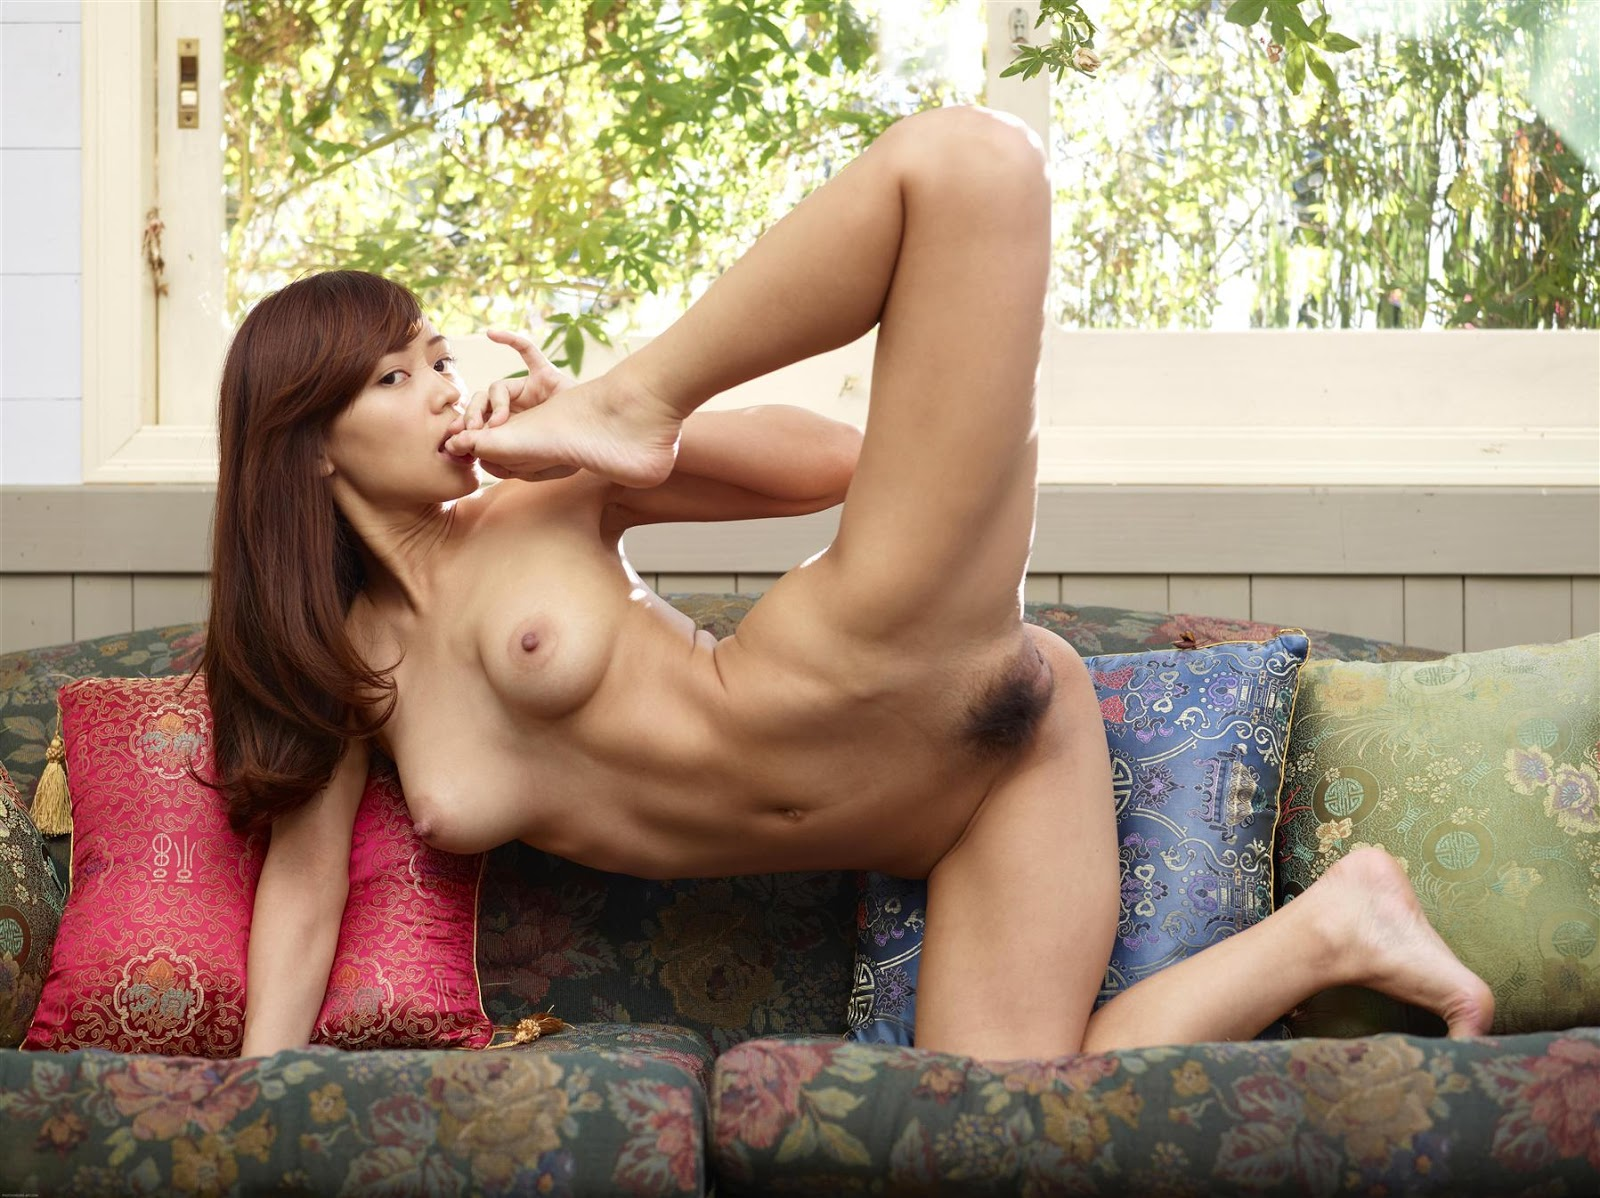 Asian Teen Pics - Official Site